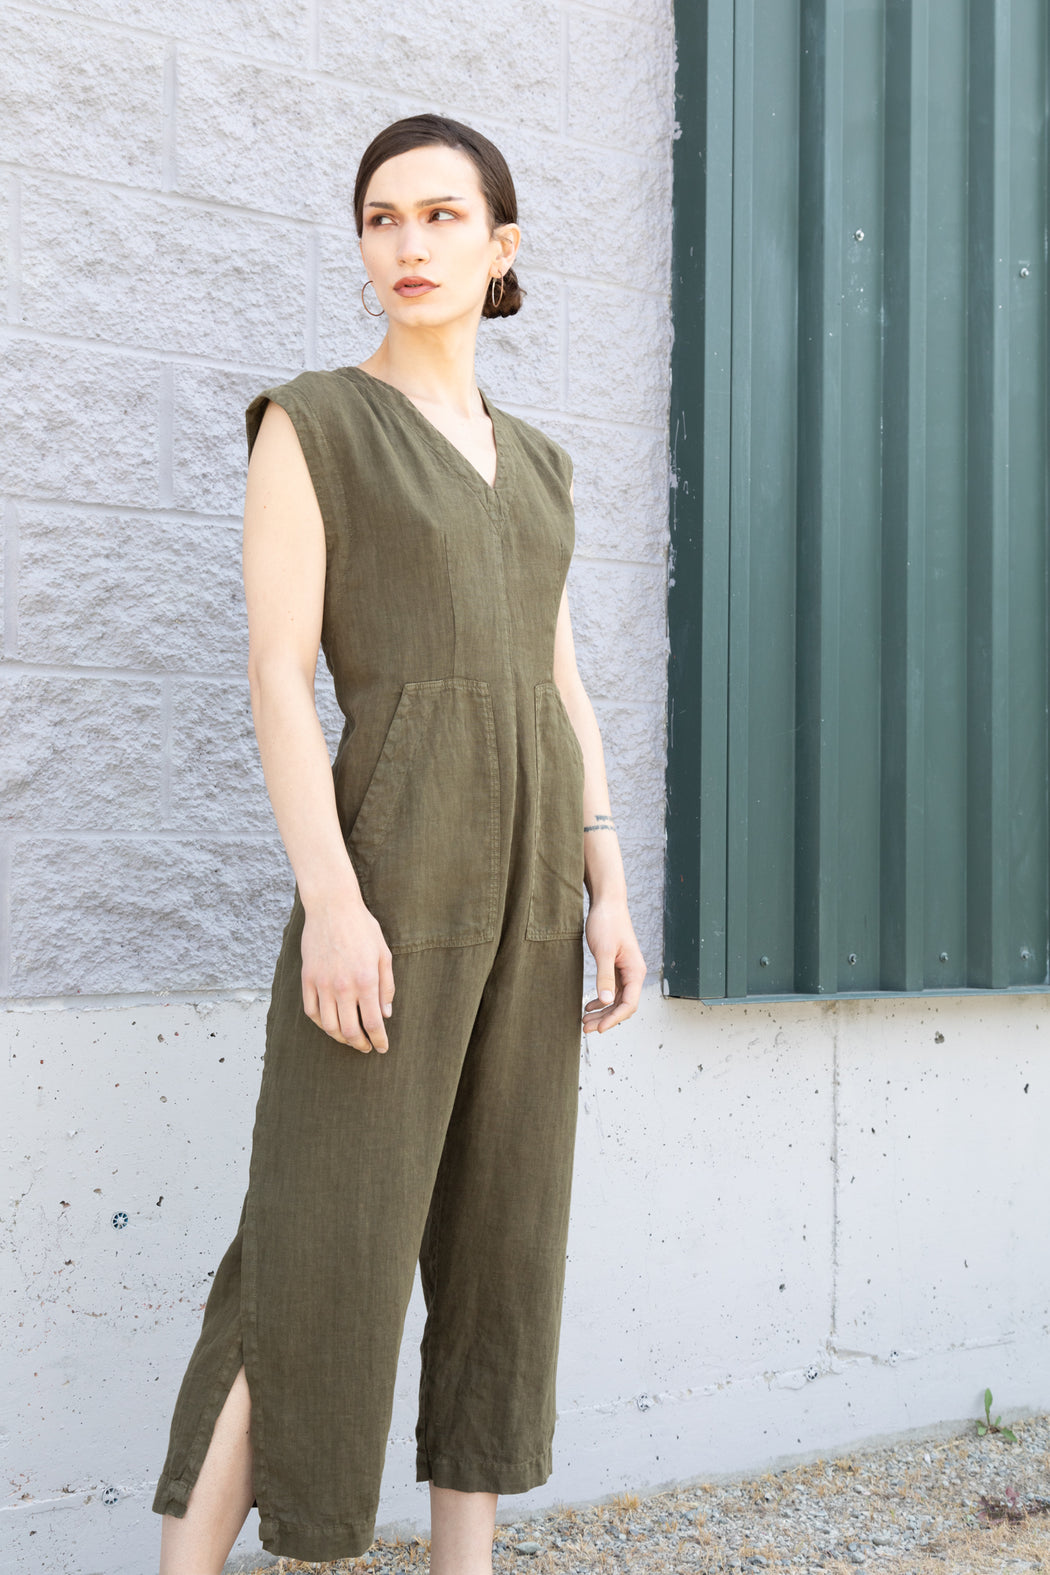 Photo of an army green linen jumpsuit with ties for adjustable wearing and sizing.